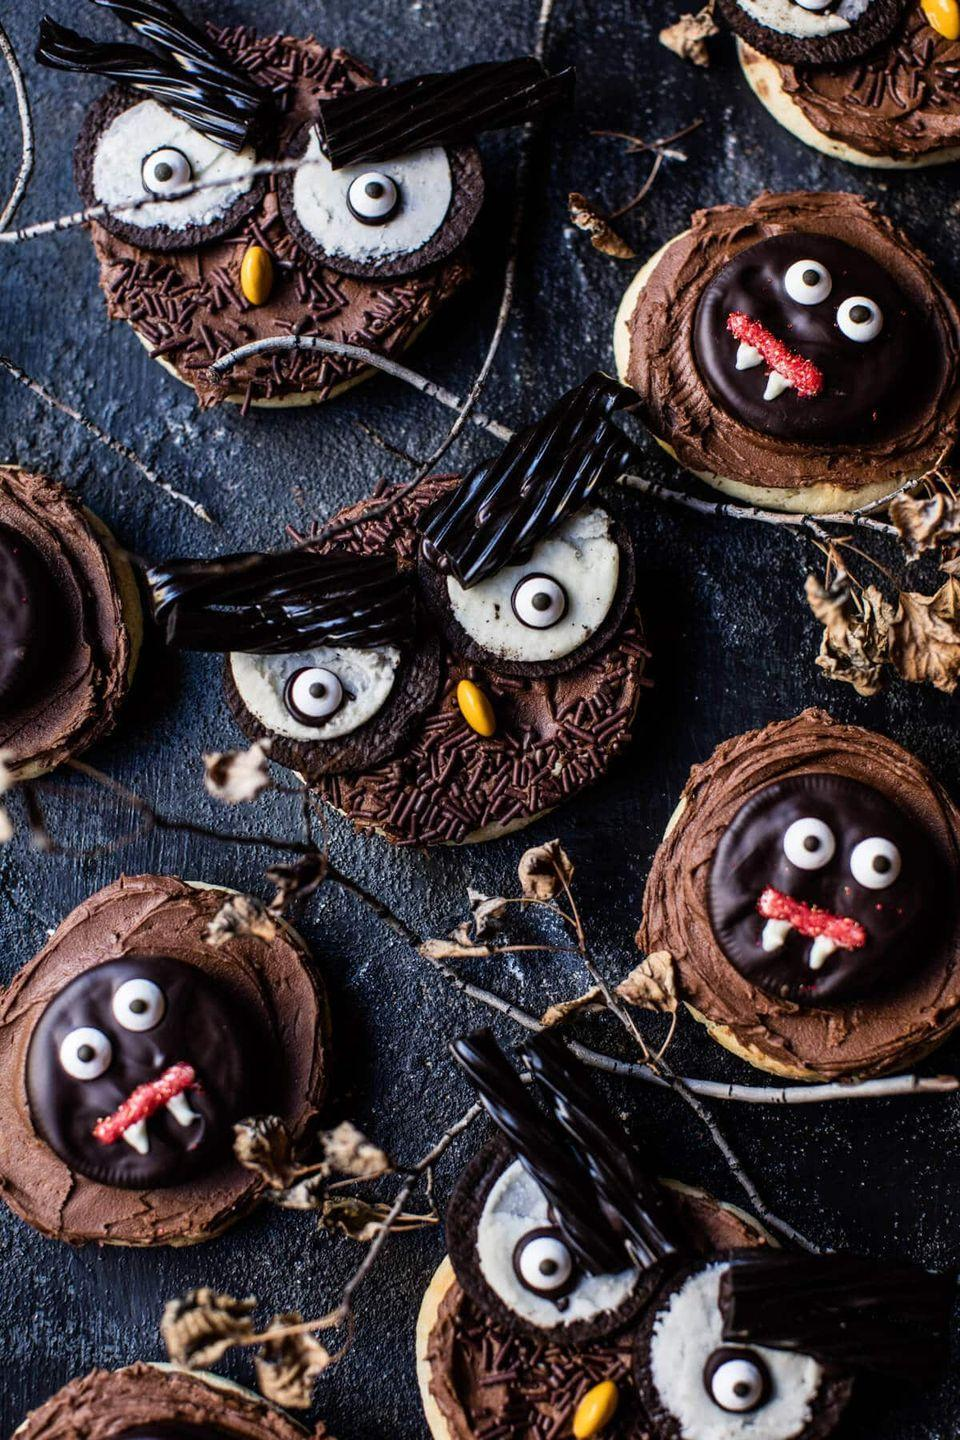 "<p>They'll be a graveyard smash!</p><p>Get the recipe from <a href=""https://www.halfbakedharvest.com/monster-mash-cookies/"" rel=""nofollow noopener"" target=""_blank"" data-ylk=""slk:Half Baked Harvest"" class=""link rapid-noclick-resp"">Half Baked Harvest</a>.</p>"